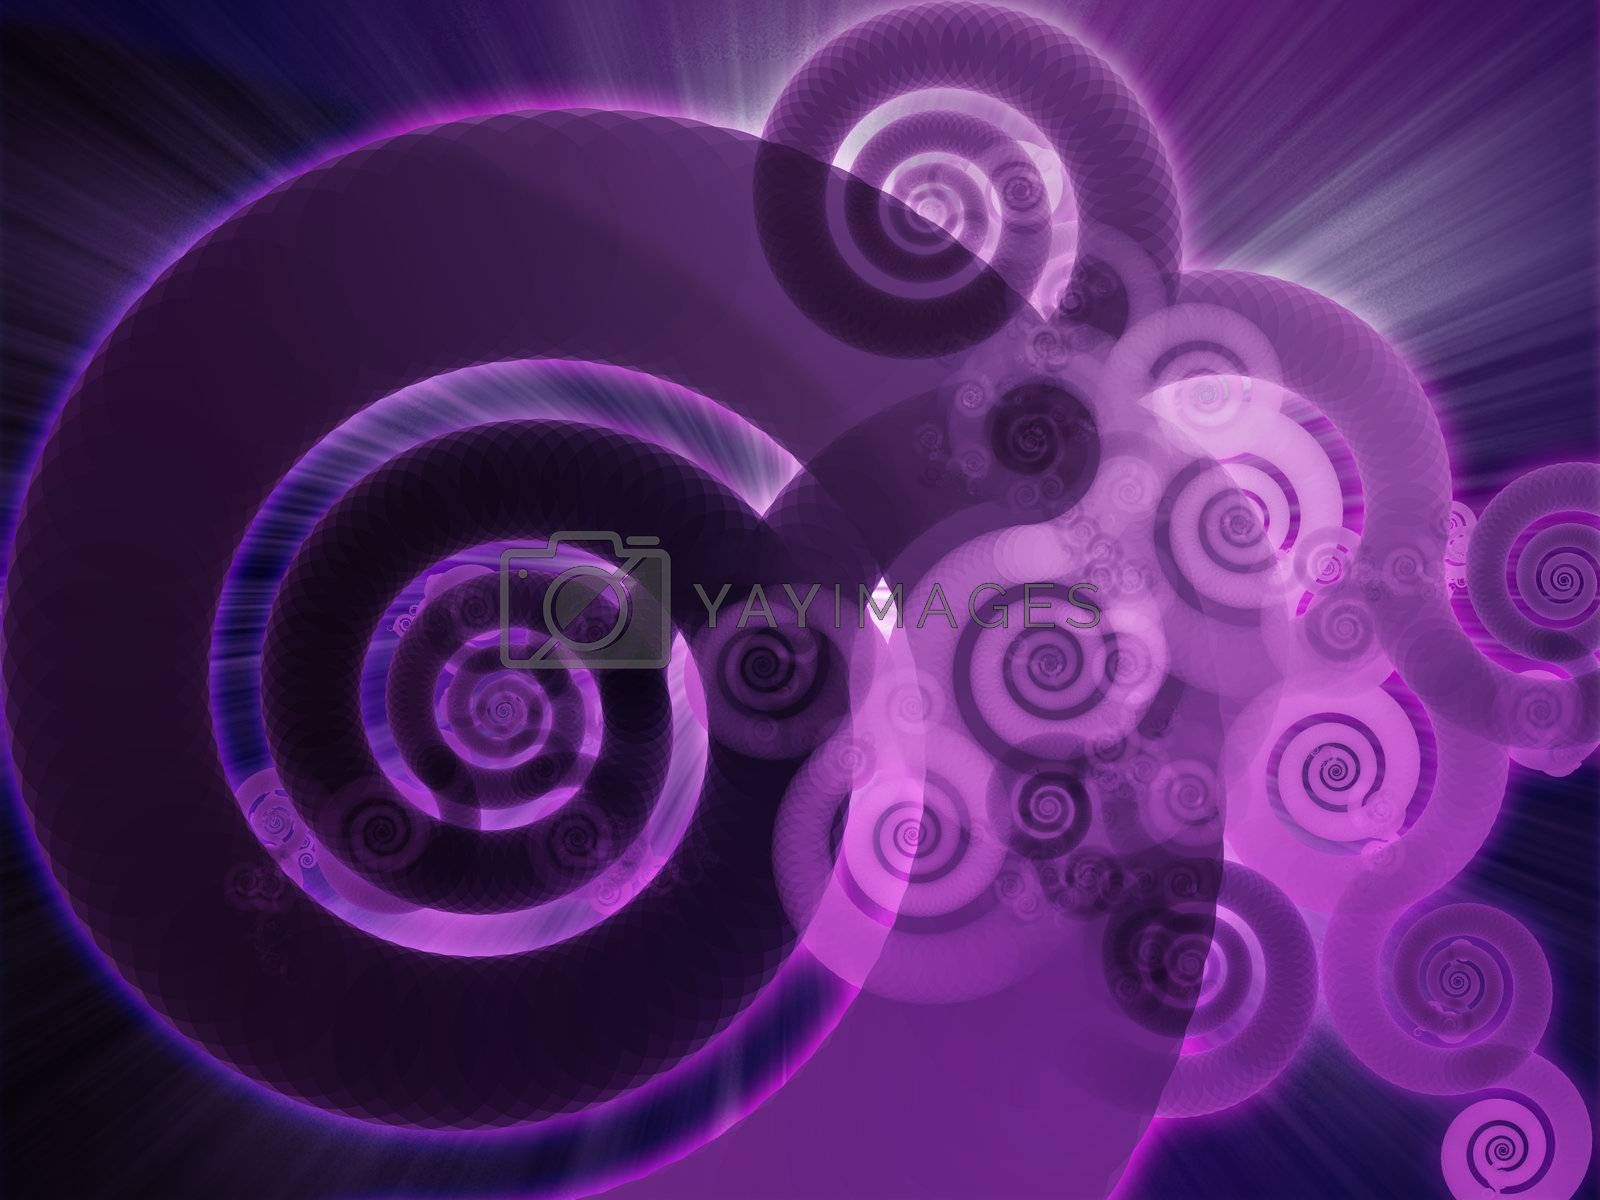 Royalty free image of Abstract swirly floral grunge illustration by kgtoh